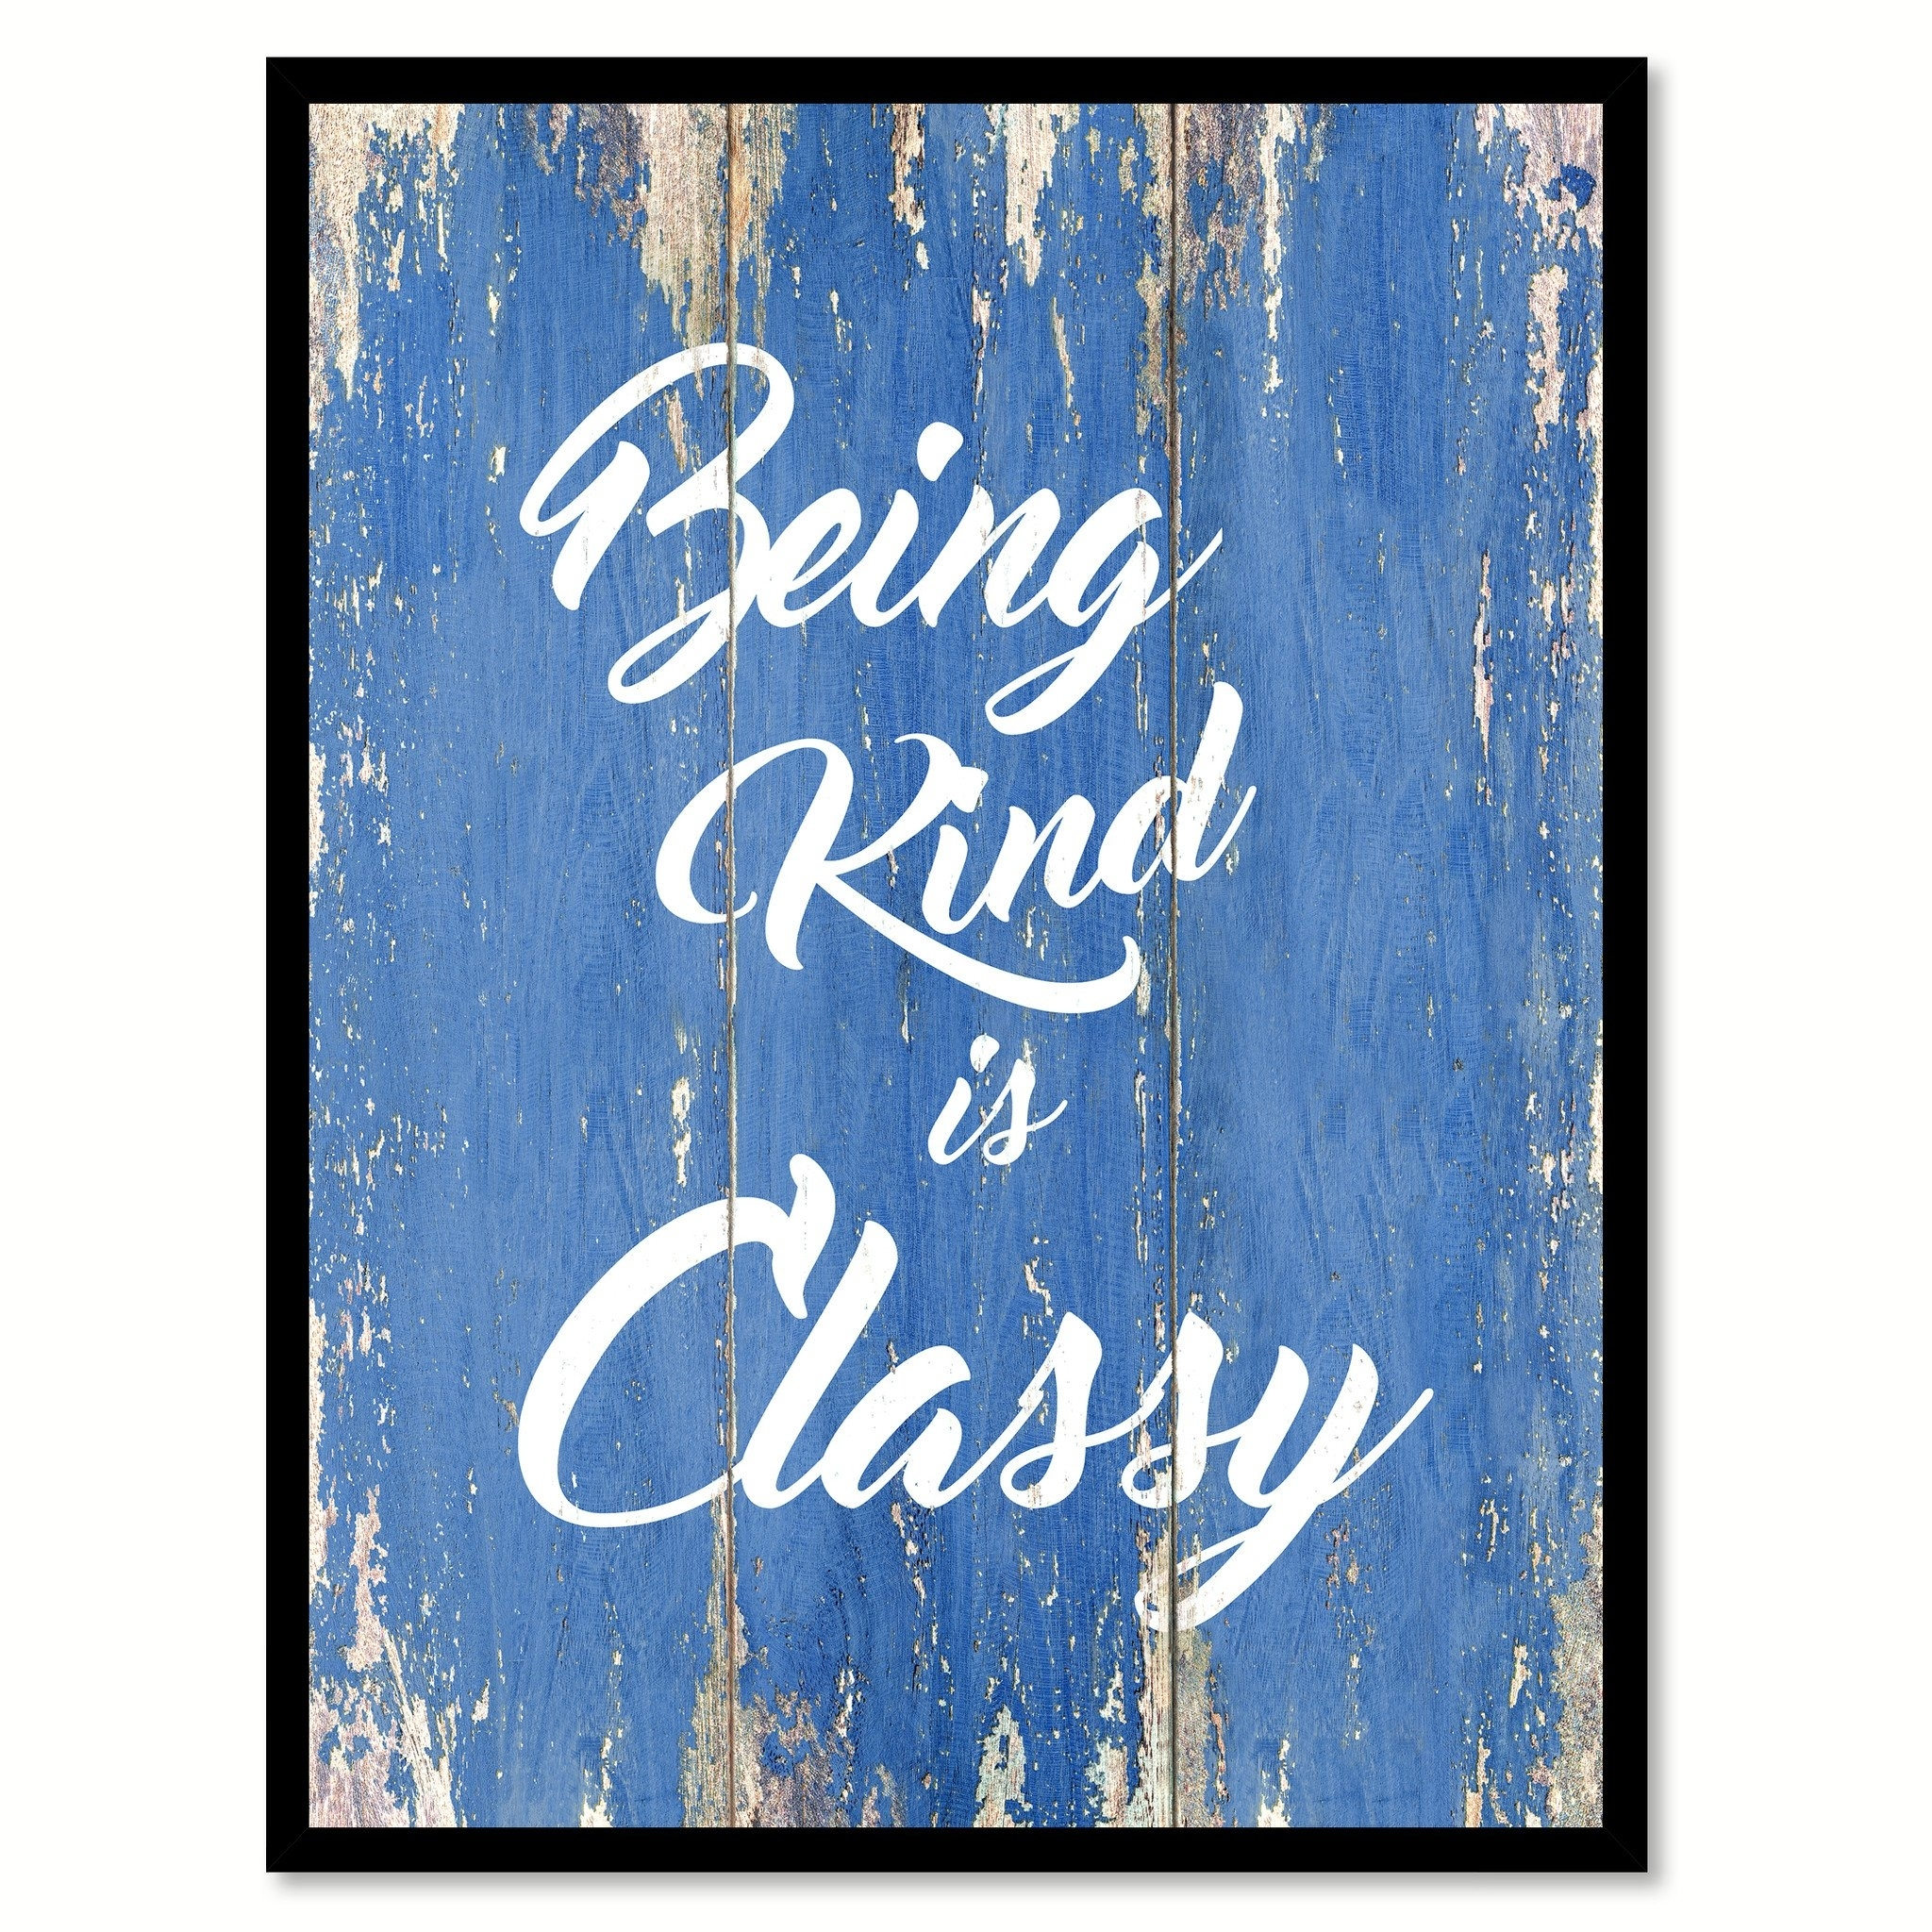 "Being Kind Is Classy Motivation Quote Saying Canvas Print with Picture Frame Gift Ideas Home Decor Wall Art 121598 - 7""x9\"""